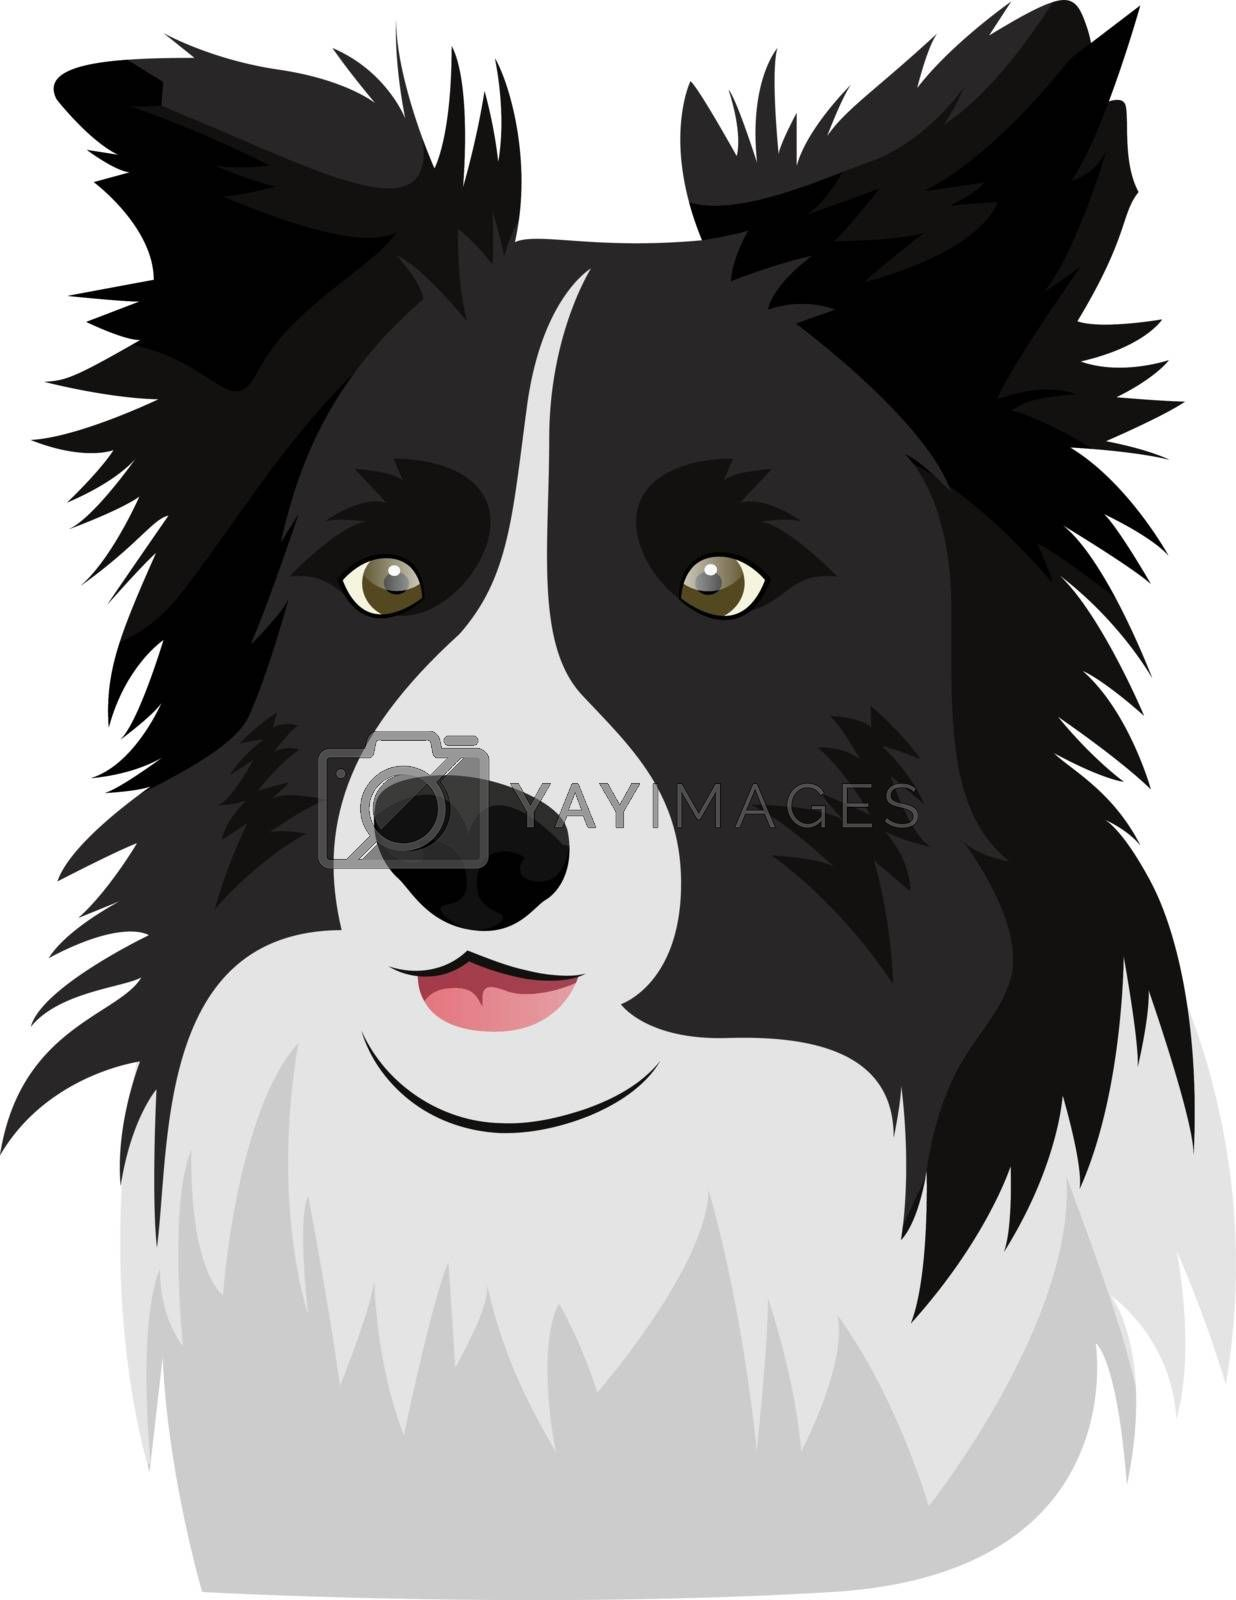 Royalty free image of Border Collie illustration vector on white background by Morphart